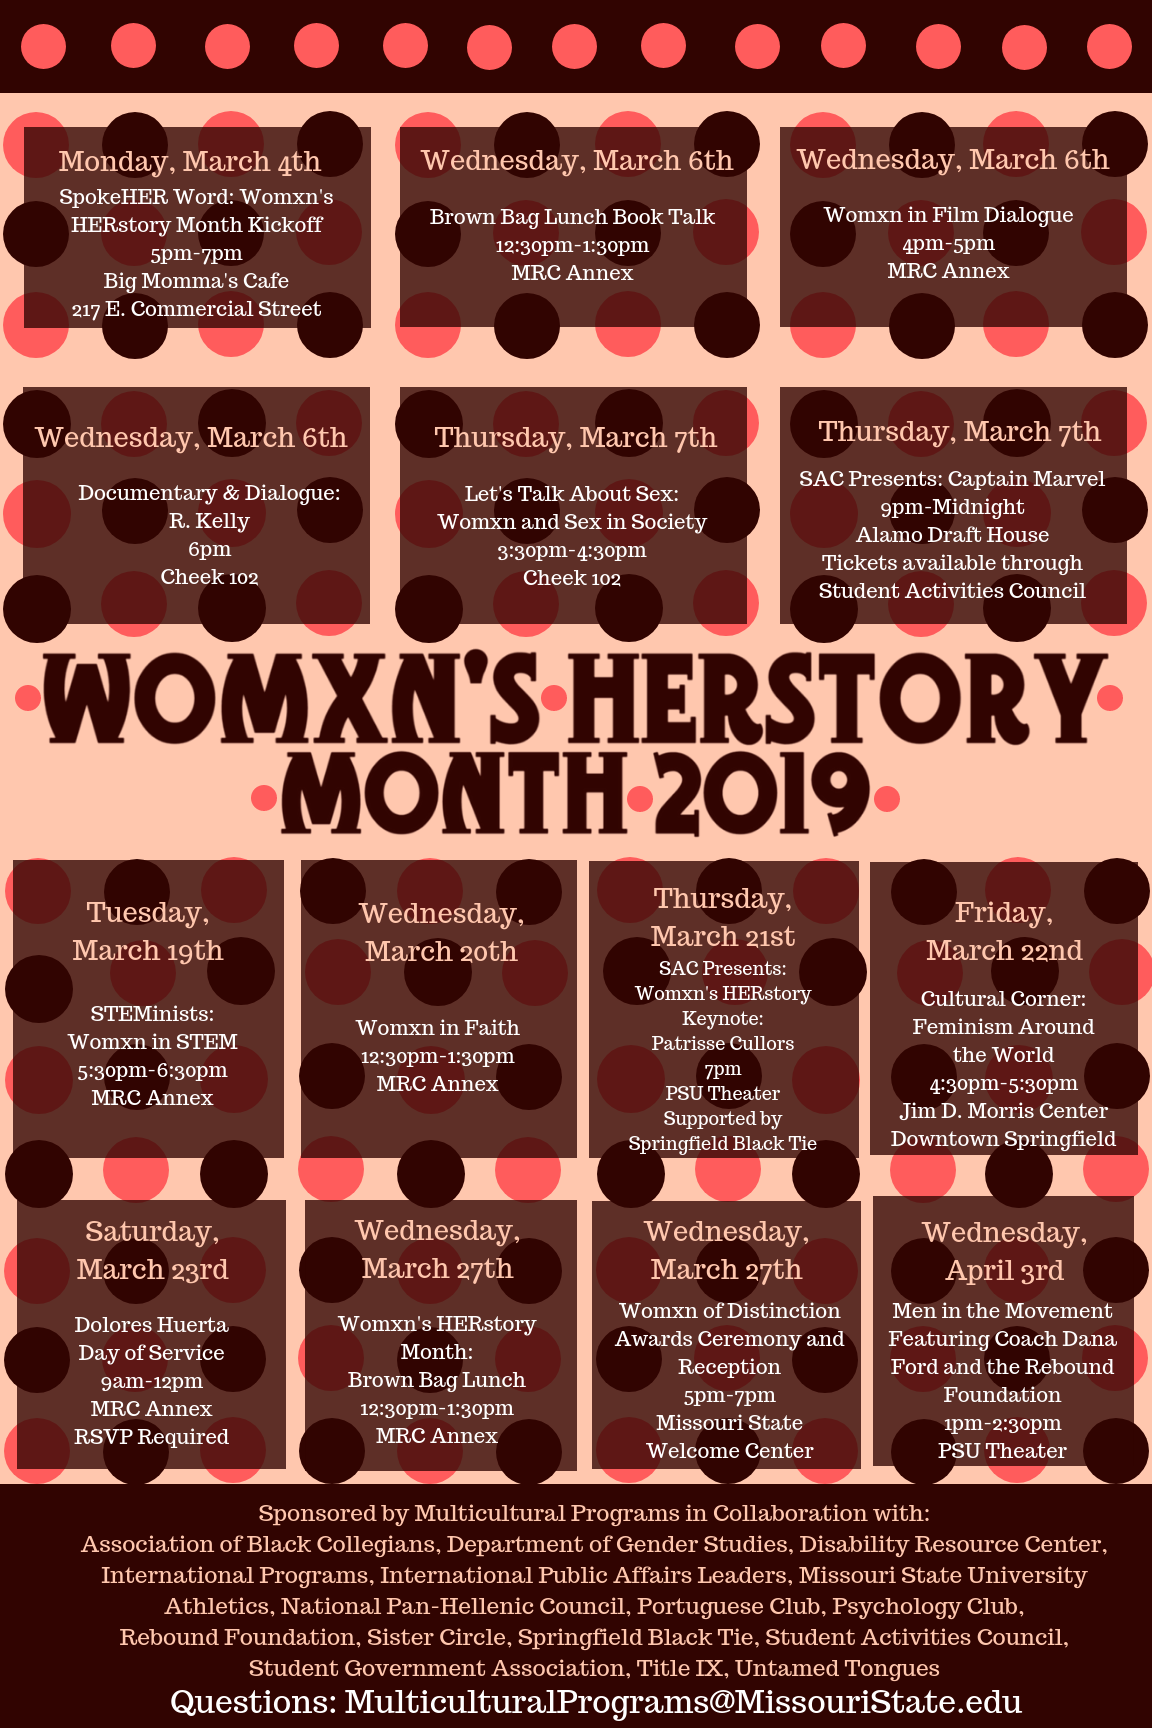 Womxn's HERstory Month 2019